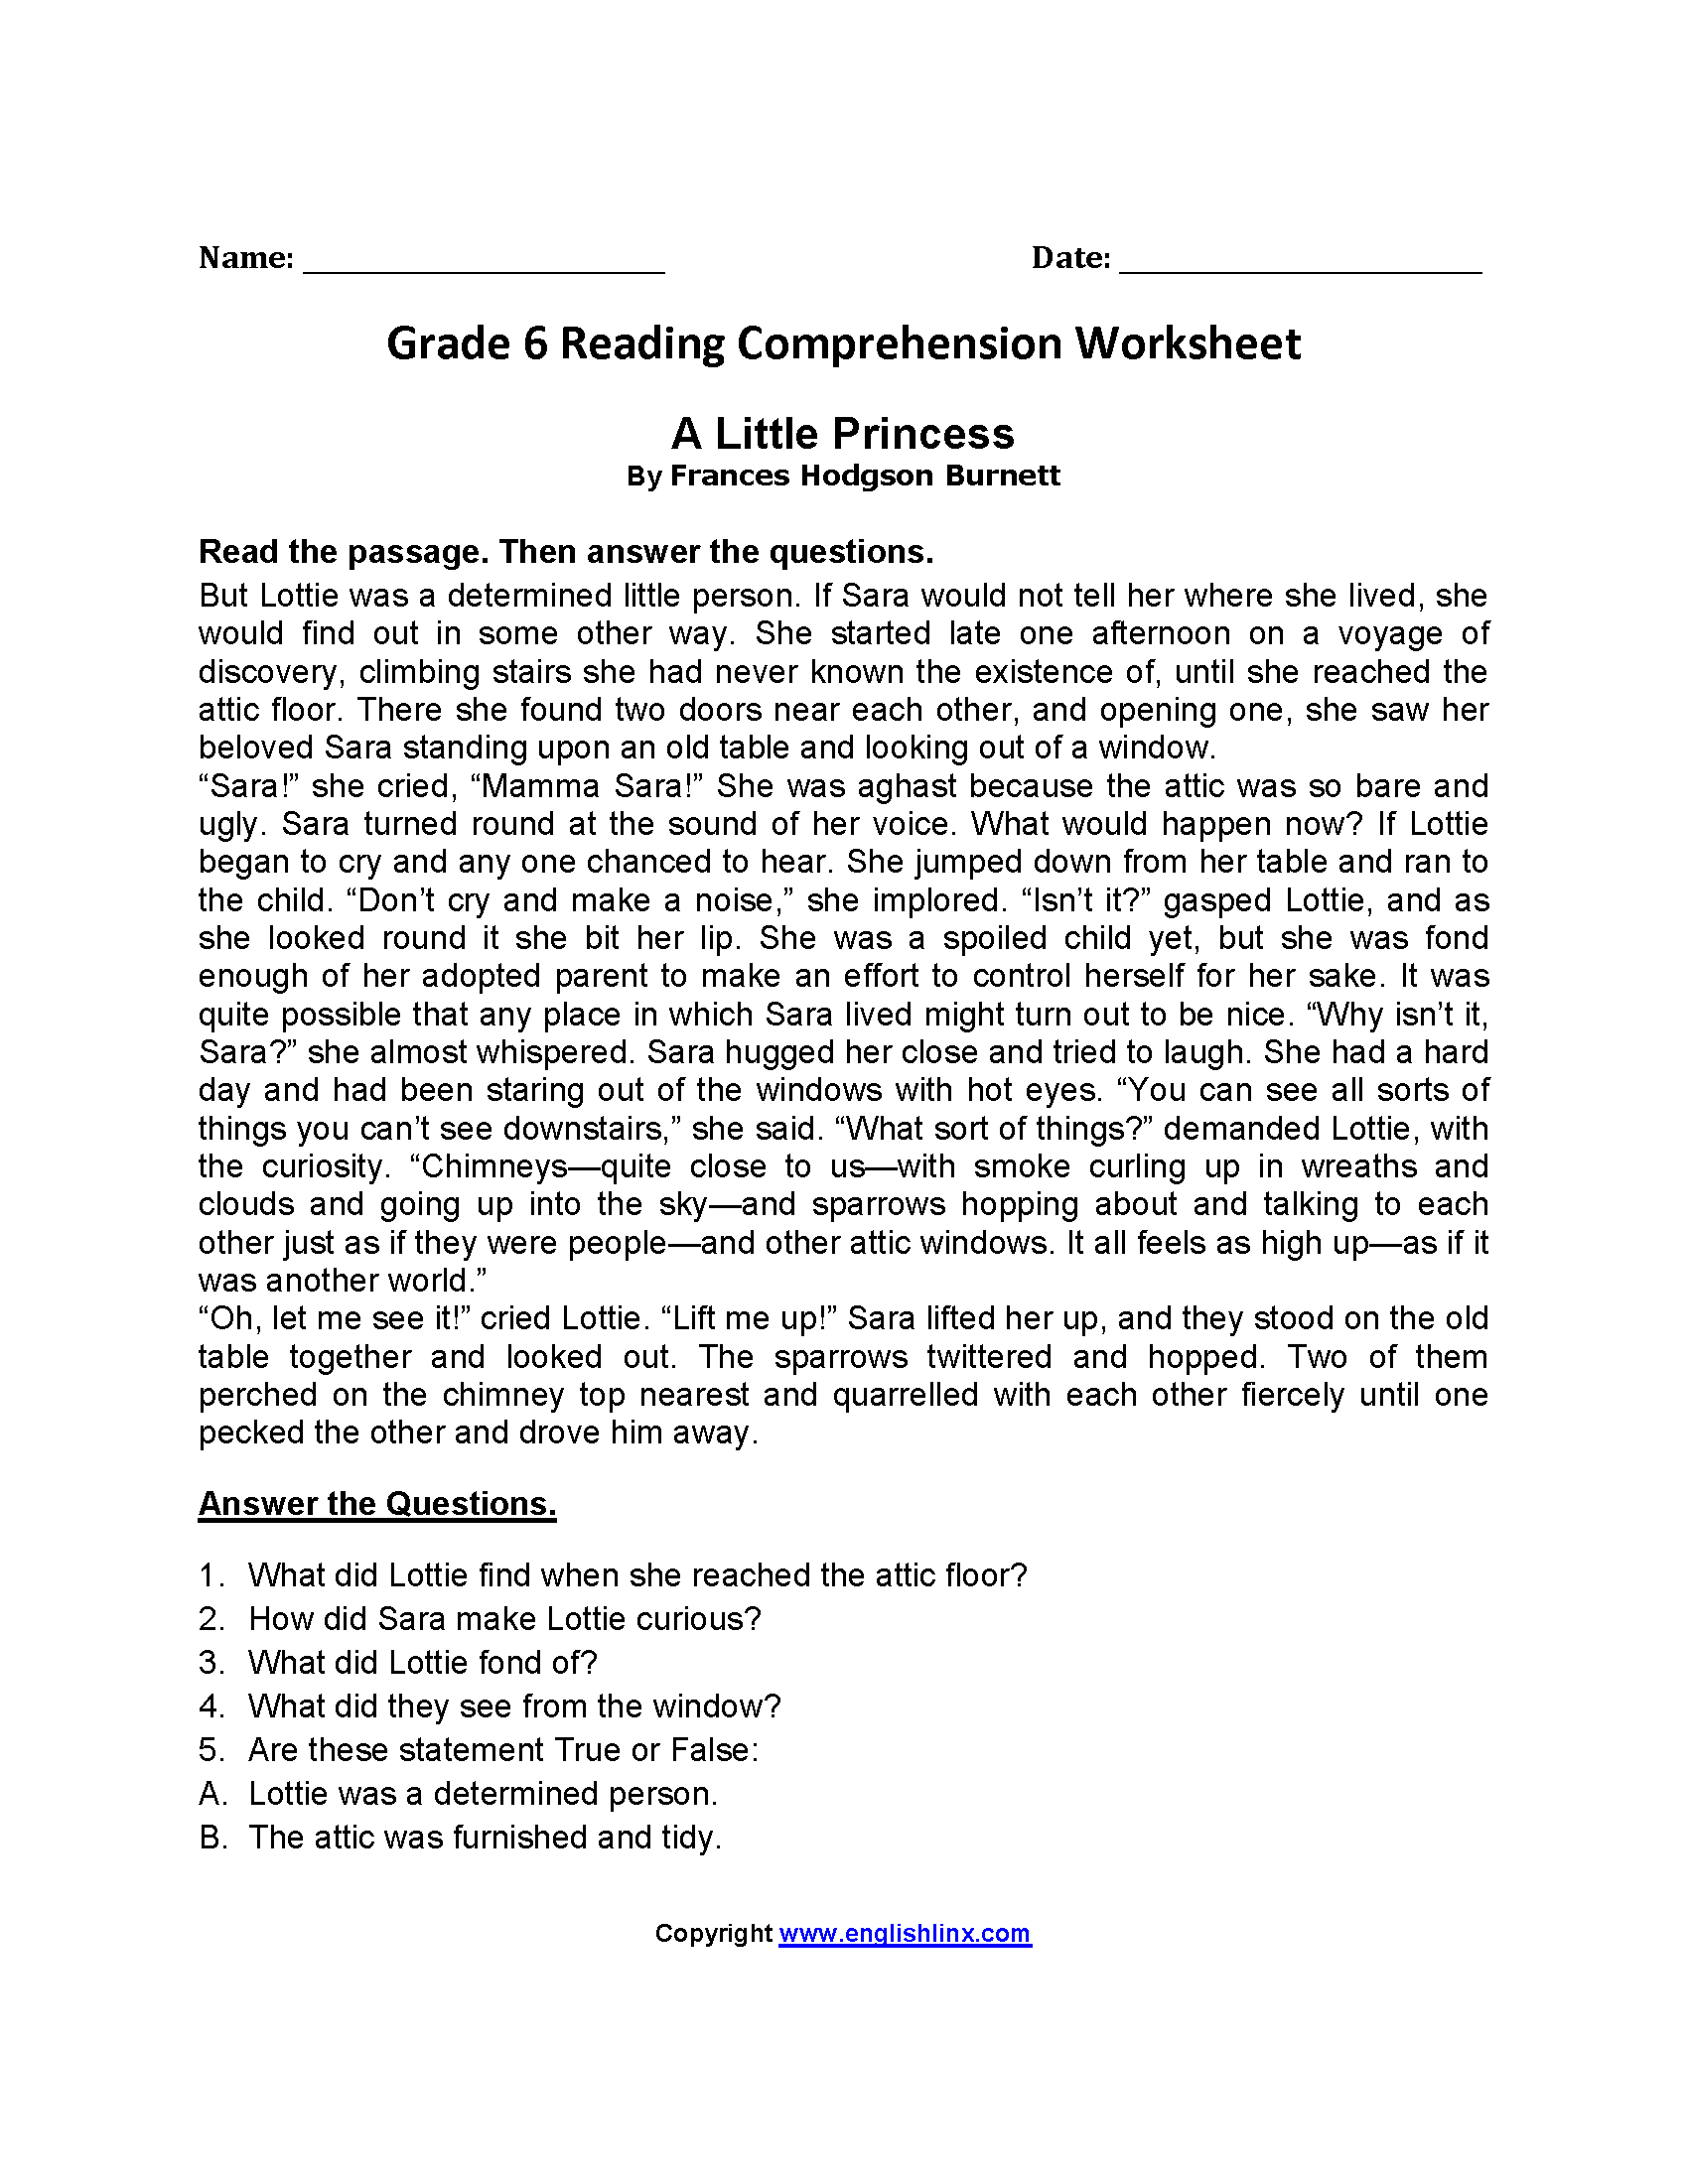 Worksheets Reading Comprehension Worksheets For 6th Grade reading worksheets sixth grade worksheets